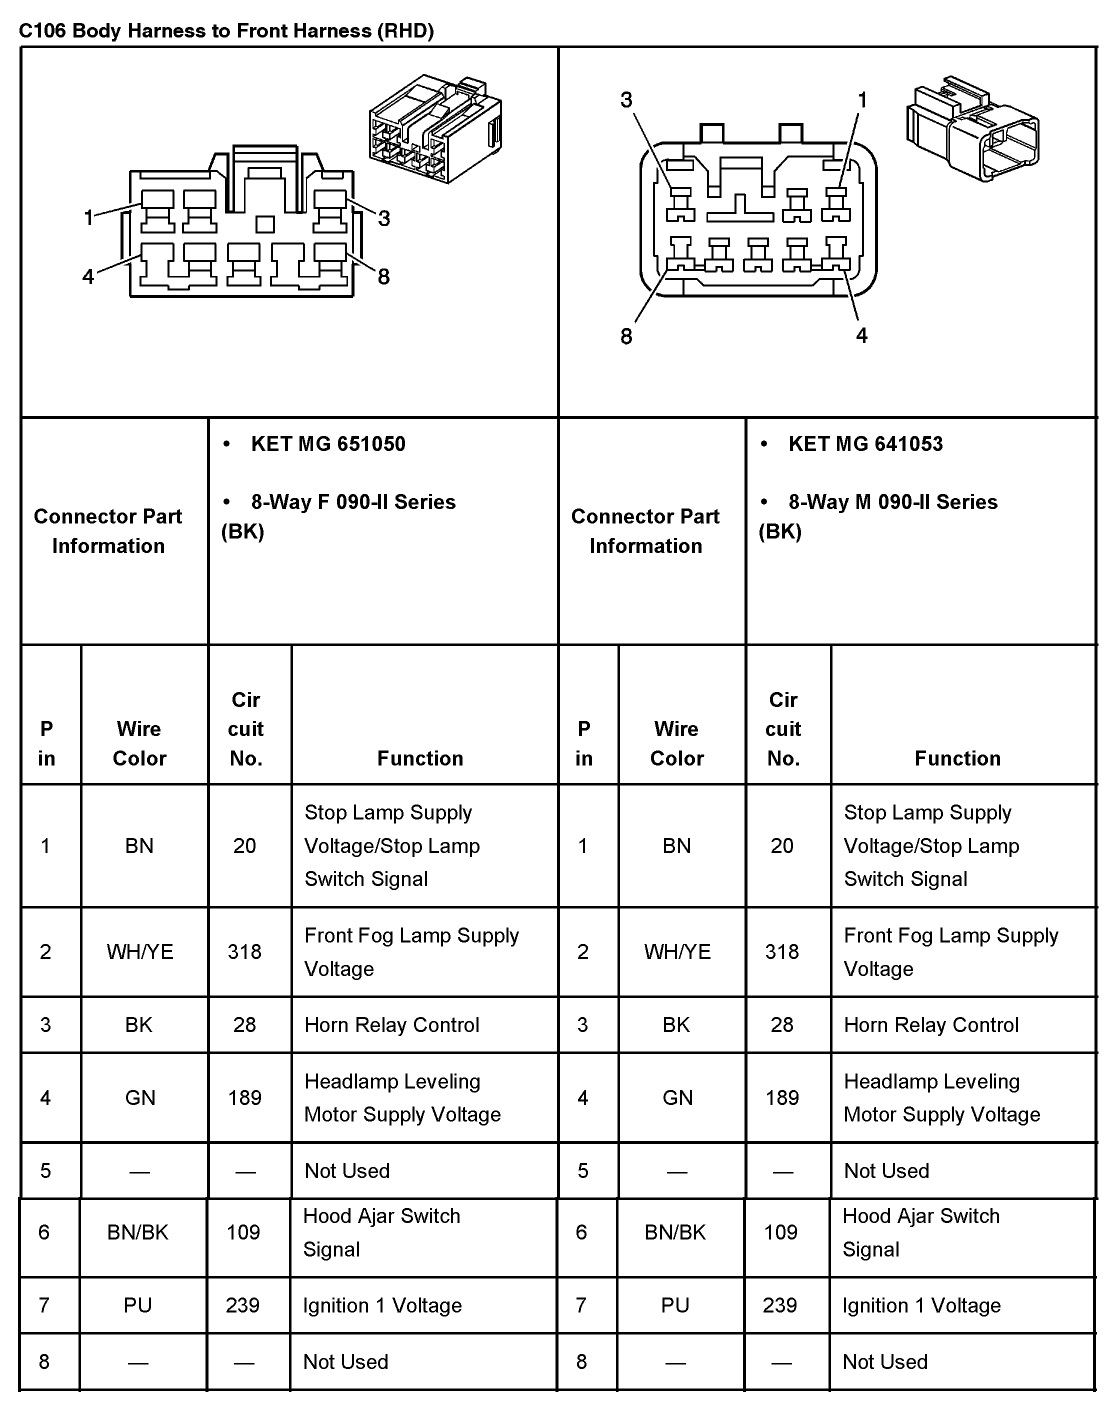 [WLLP_2054]   2006 Impala Radio Wiring Diagram - 1972 Oldsmobile 88 Wiring Harness for  Wiring Diagram Schematics | 2006 Impala Wiring Harness |  | Wiring Diagram Schematics